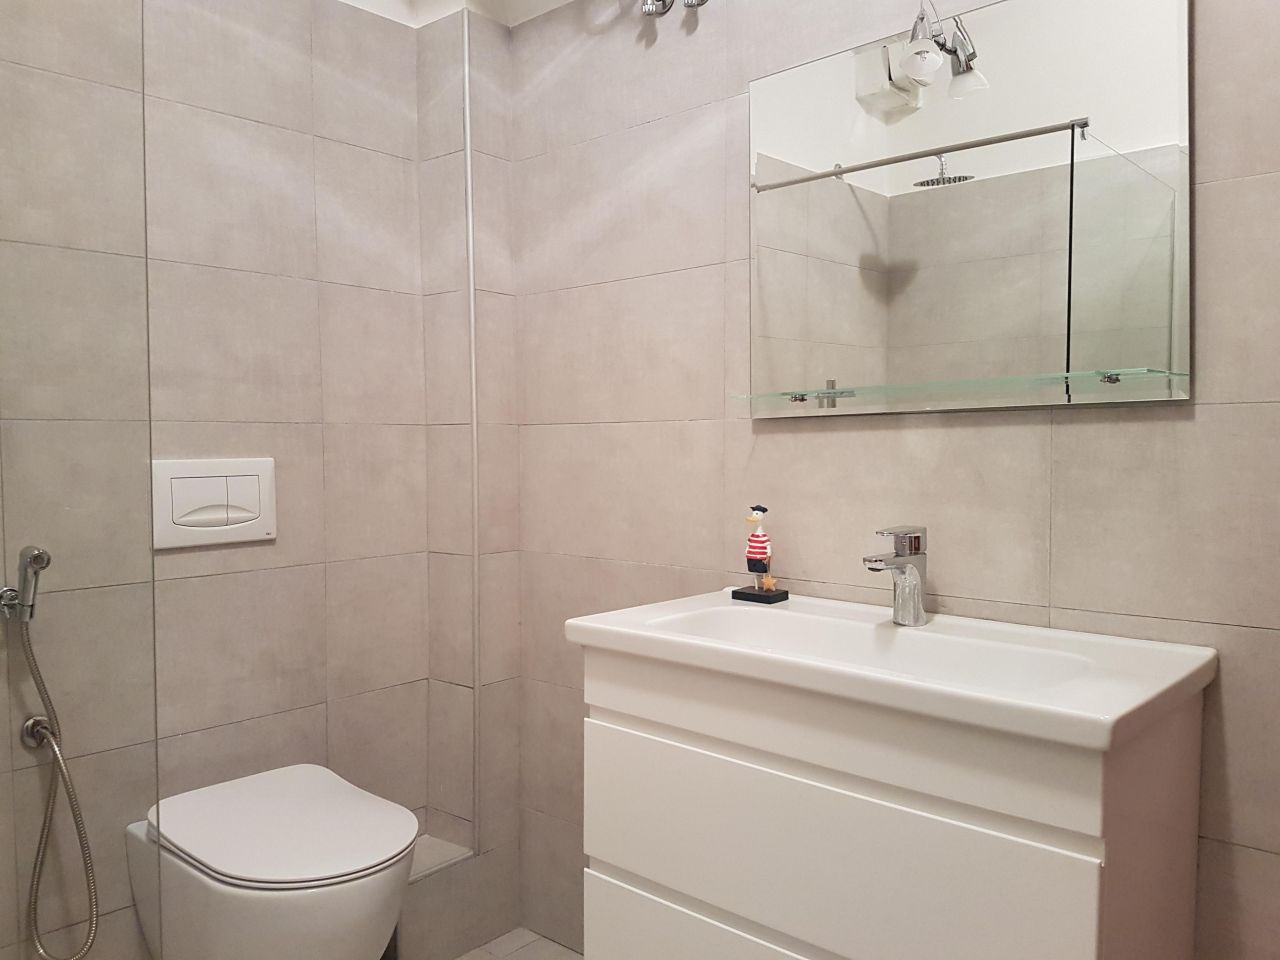 Furnished apartment for rent in Tirana, Albania's capital.